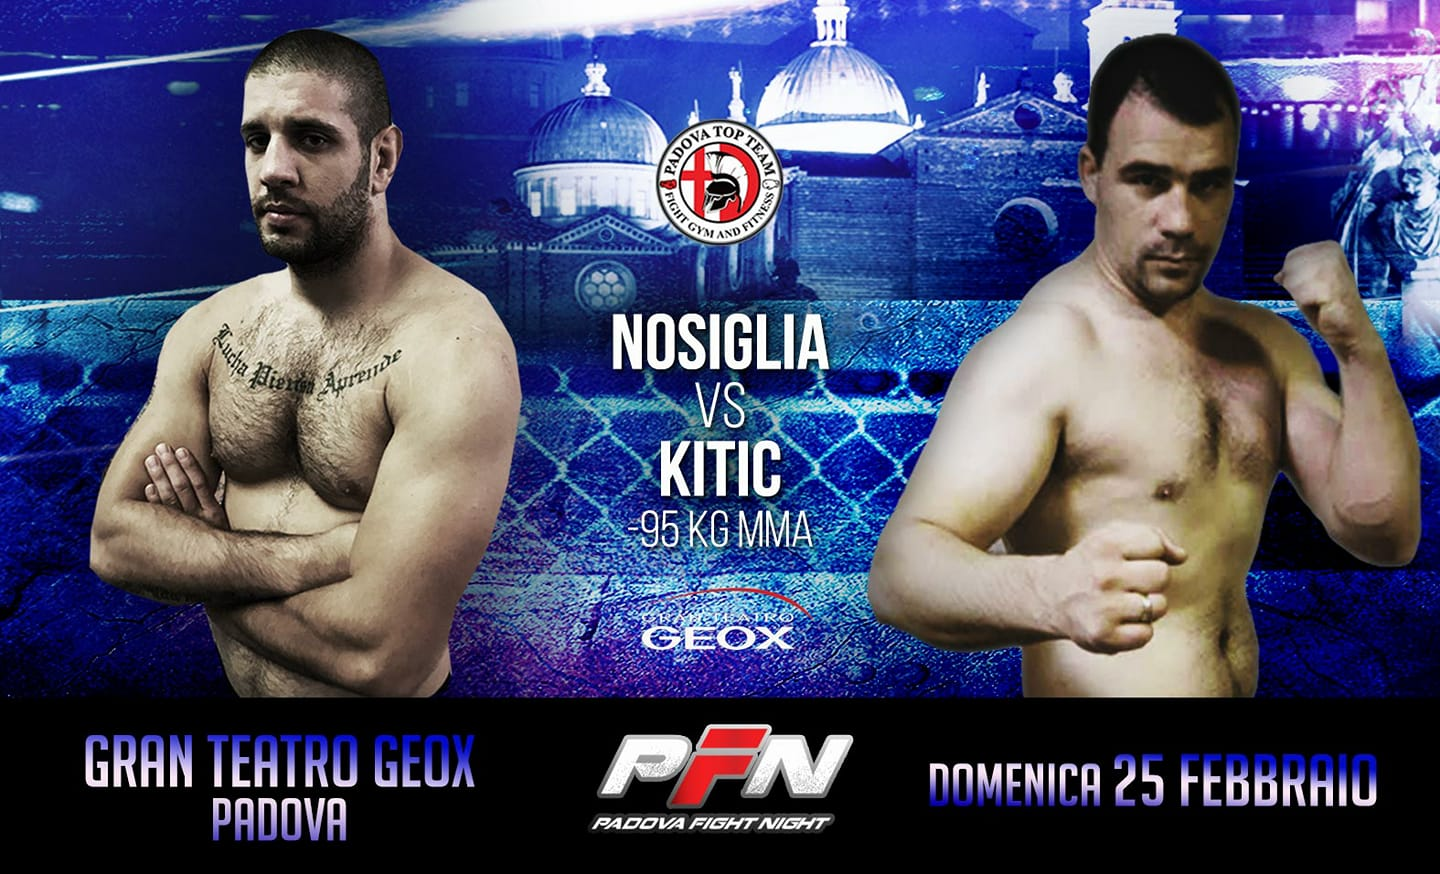 PADOVA FIGHT NIGHT 8